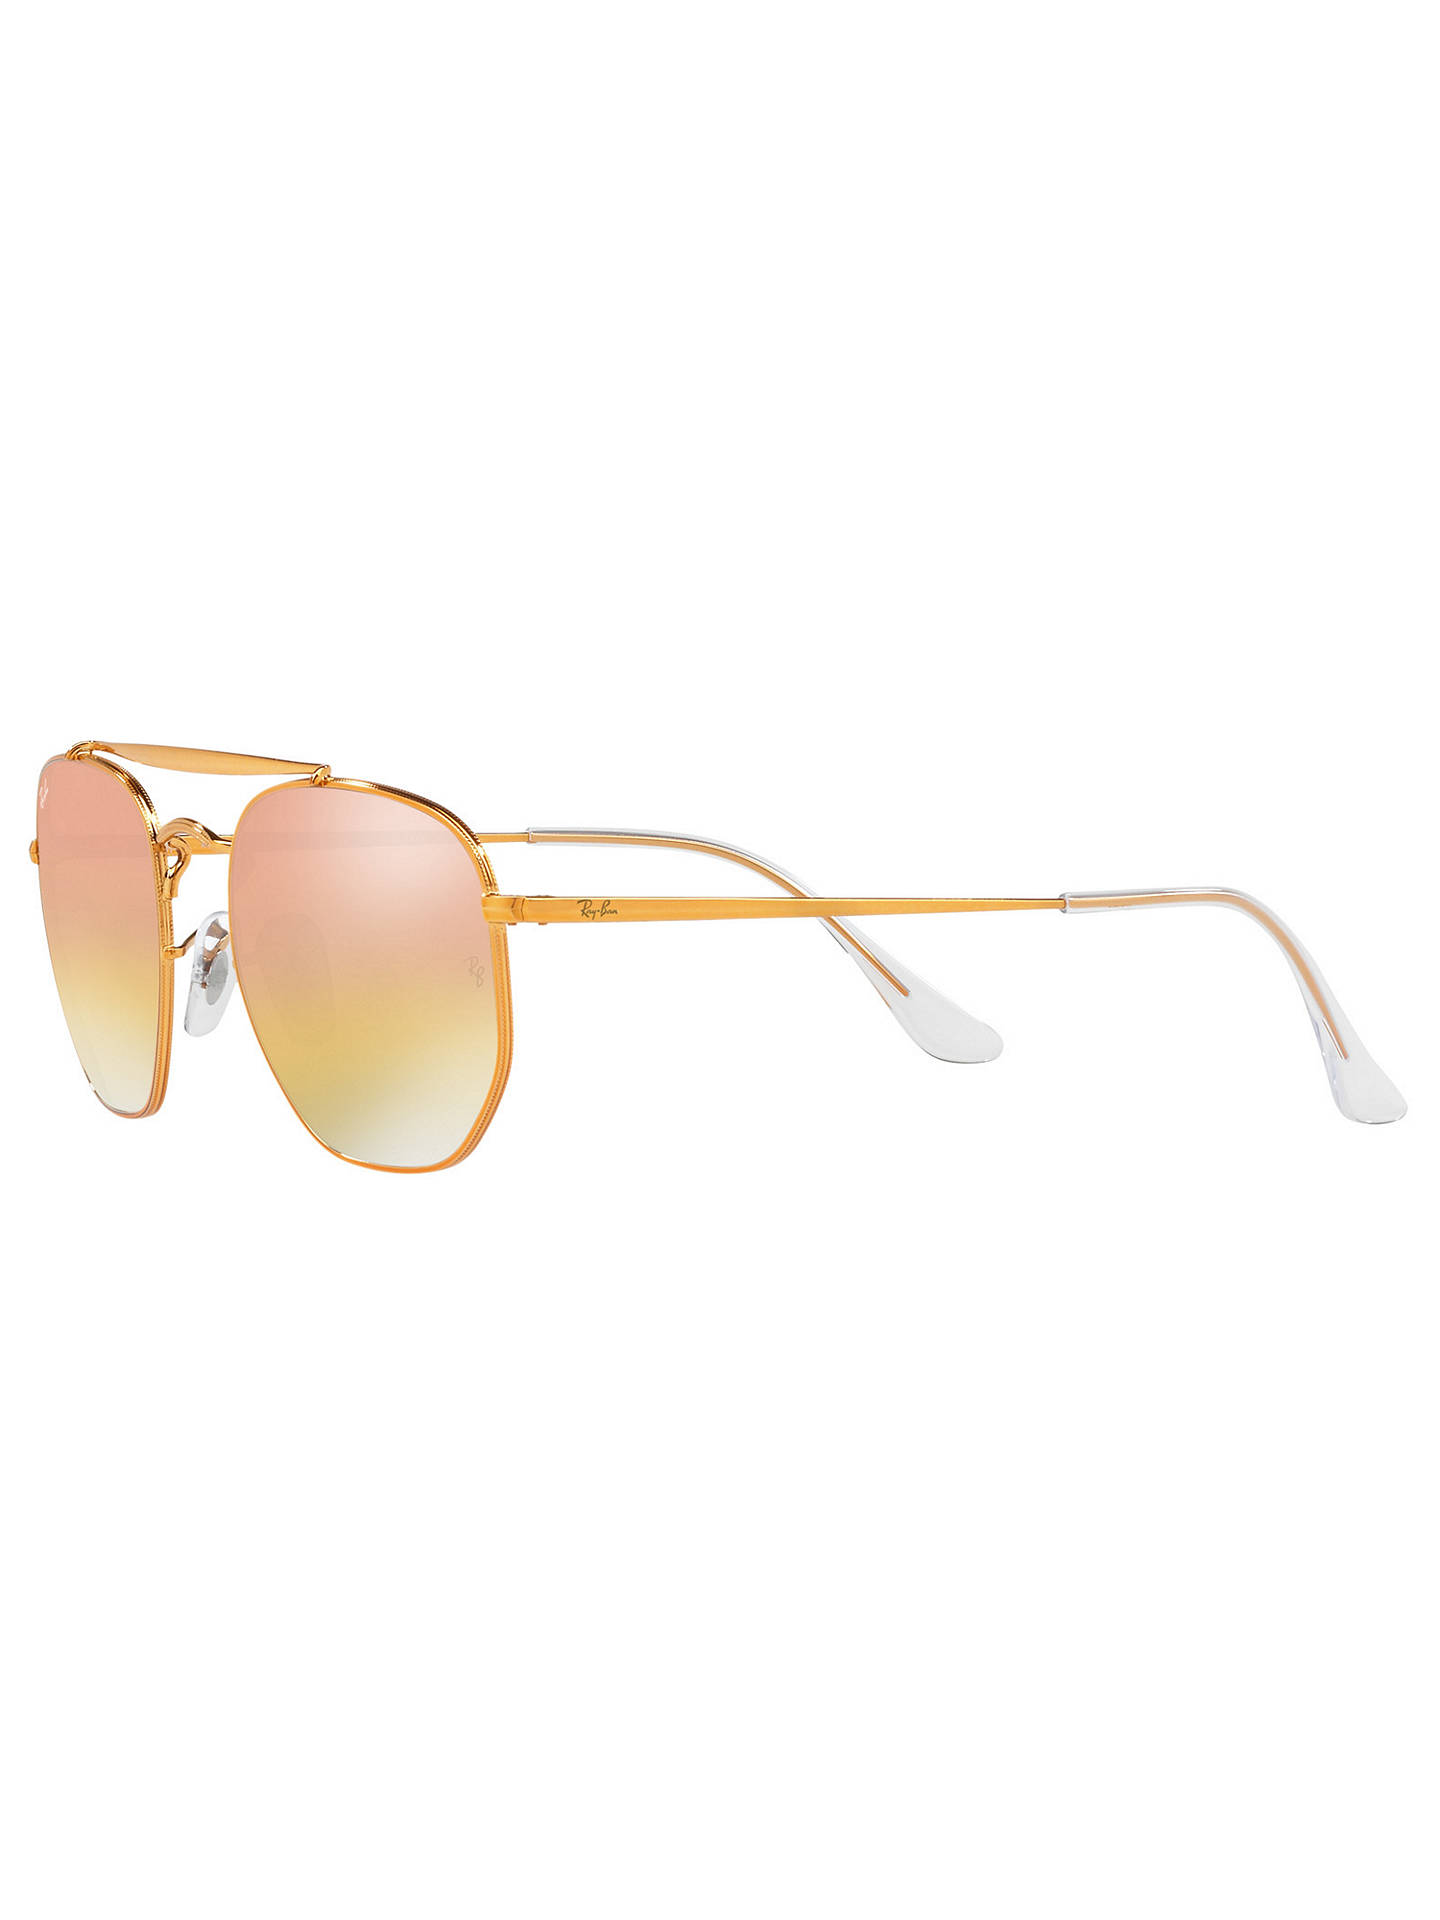 BuyRay-Ban RB3648 Square Sunglasses, Bronze/Mirror Pink Online at johnlewis.com